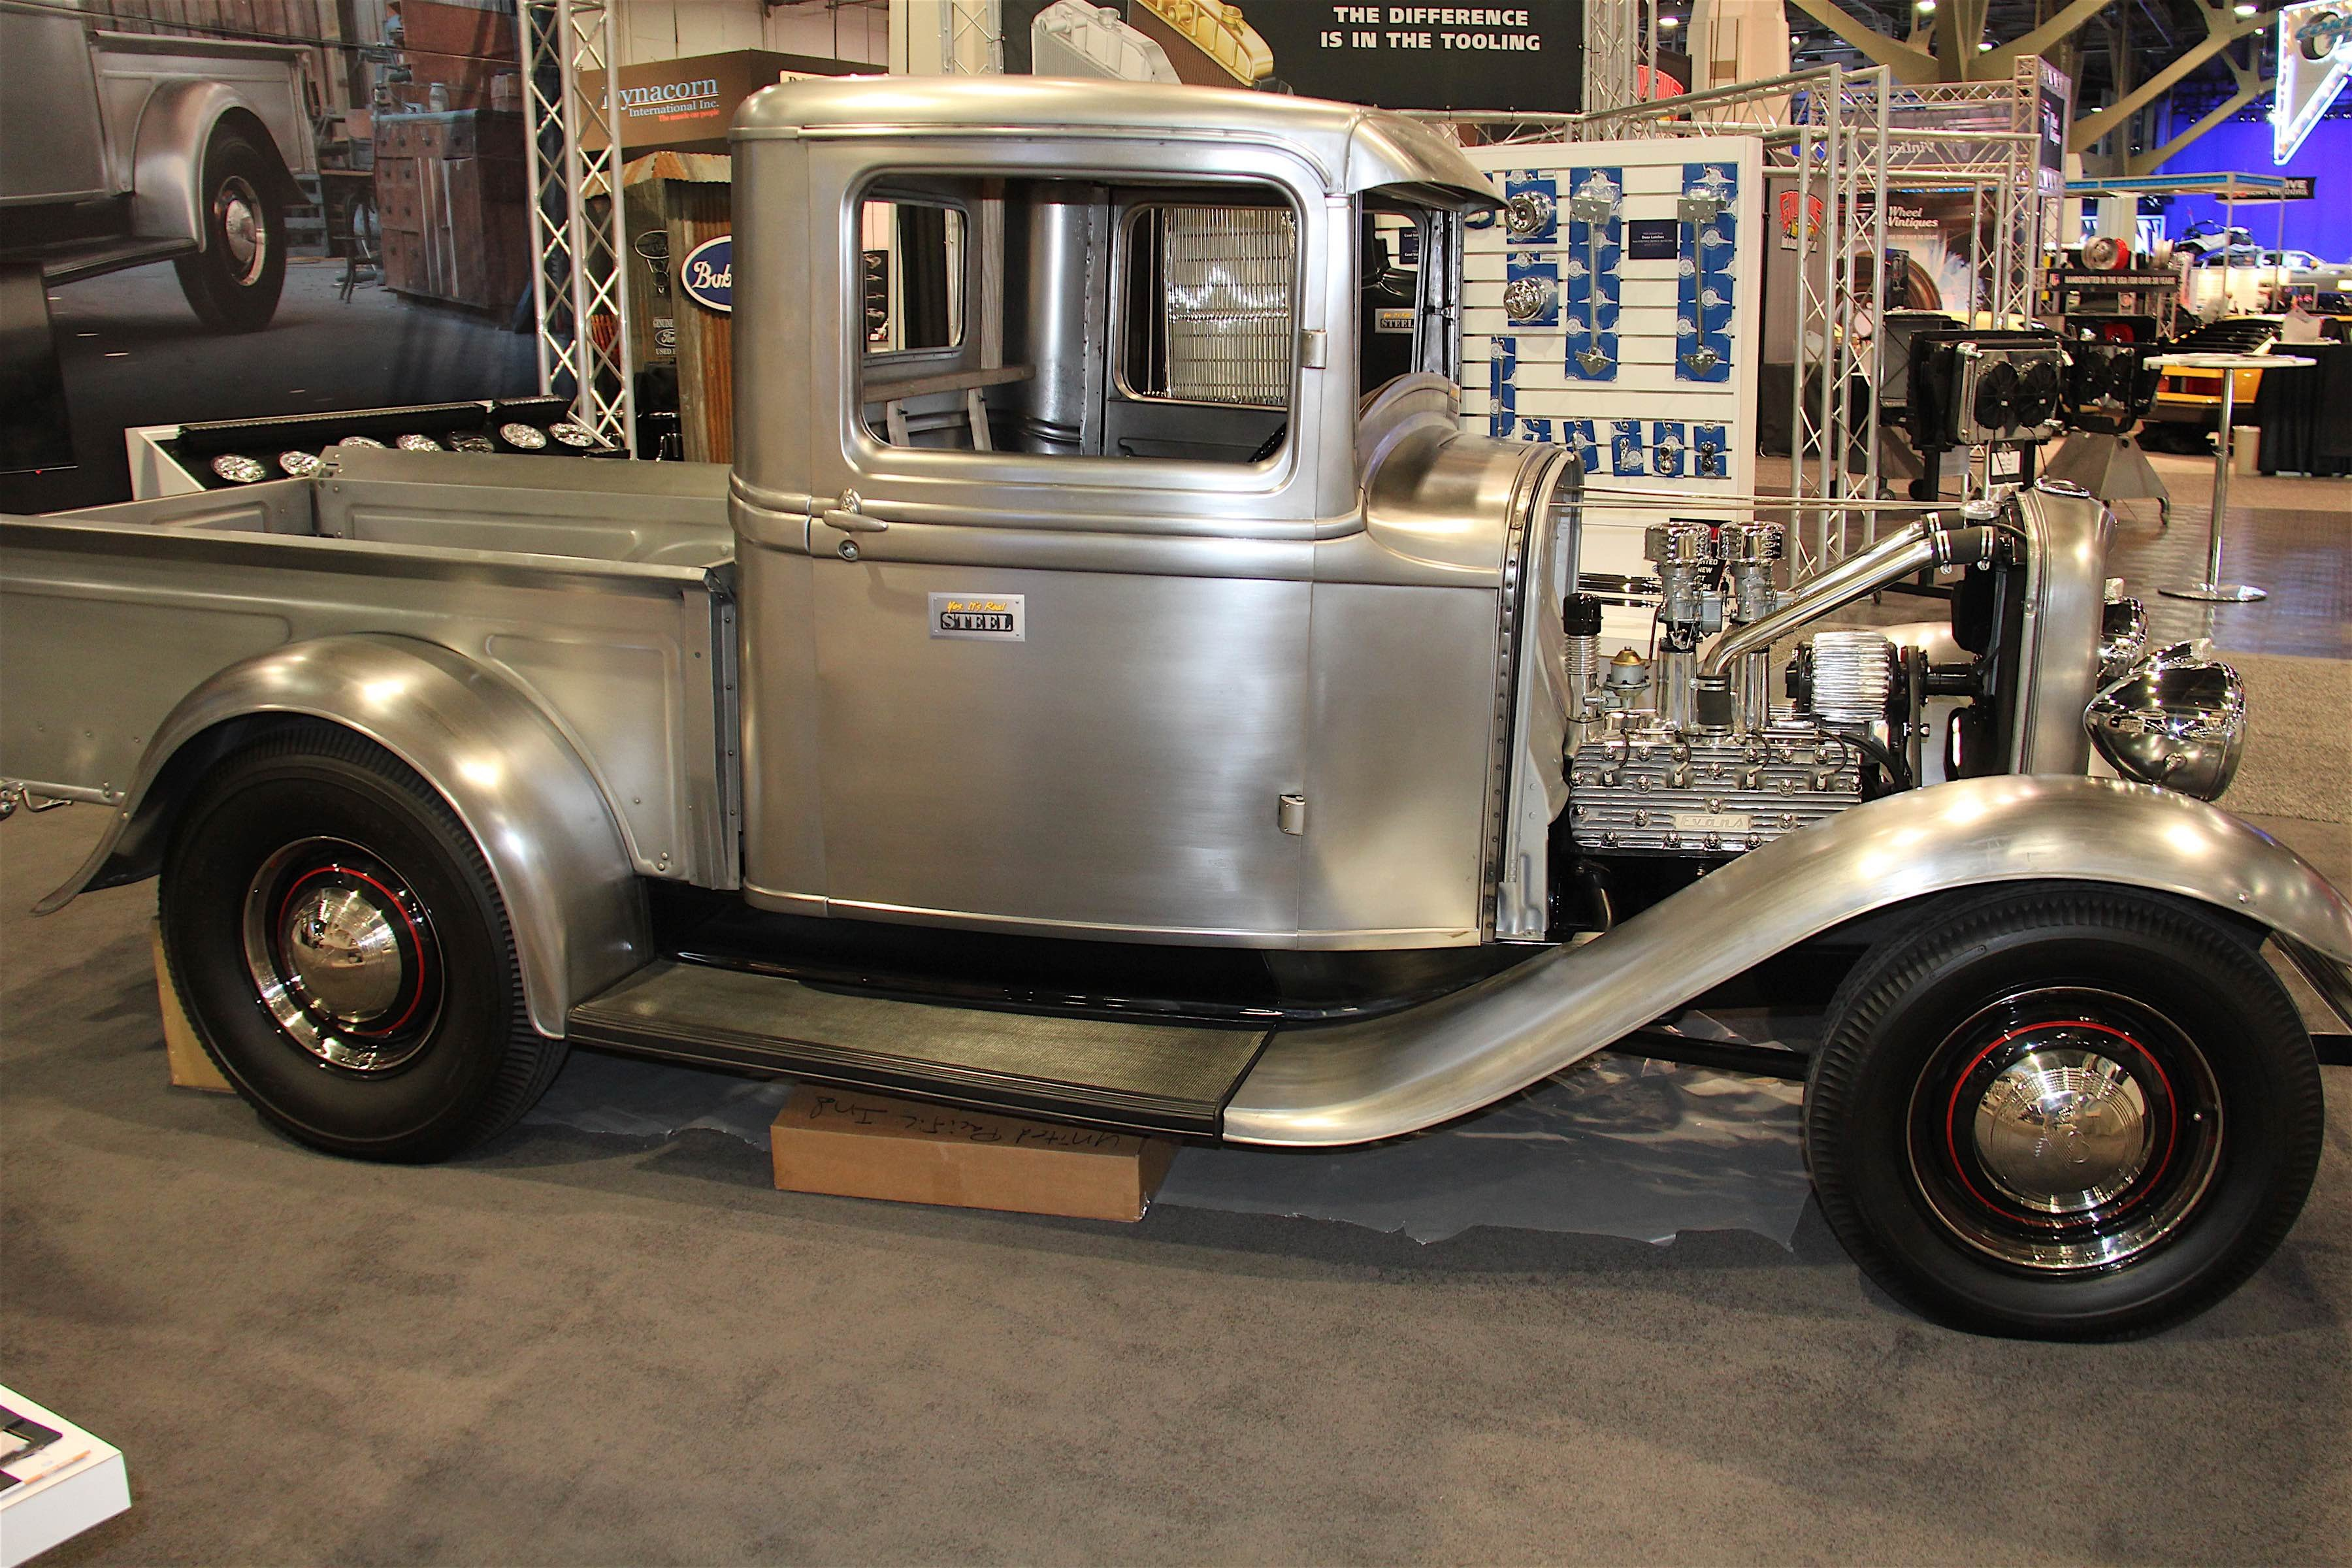 Upi considers the 1932 truck part of the natural progression of their product line the original 32 ford truck was a workhorse that many americans